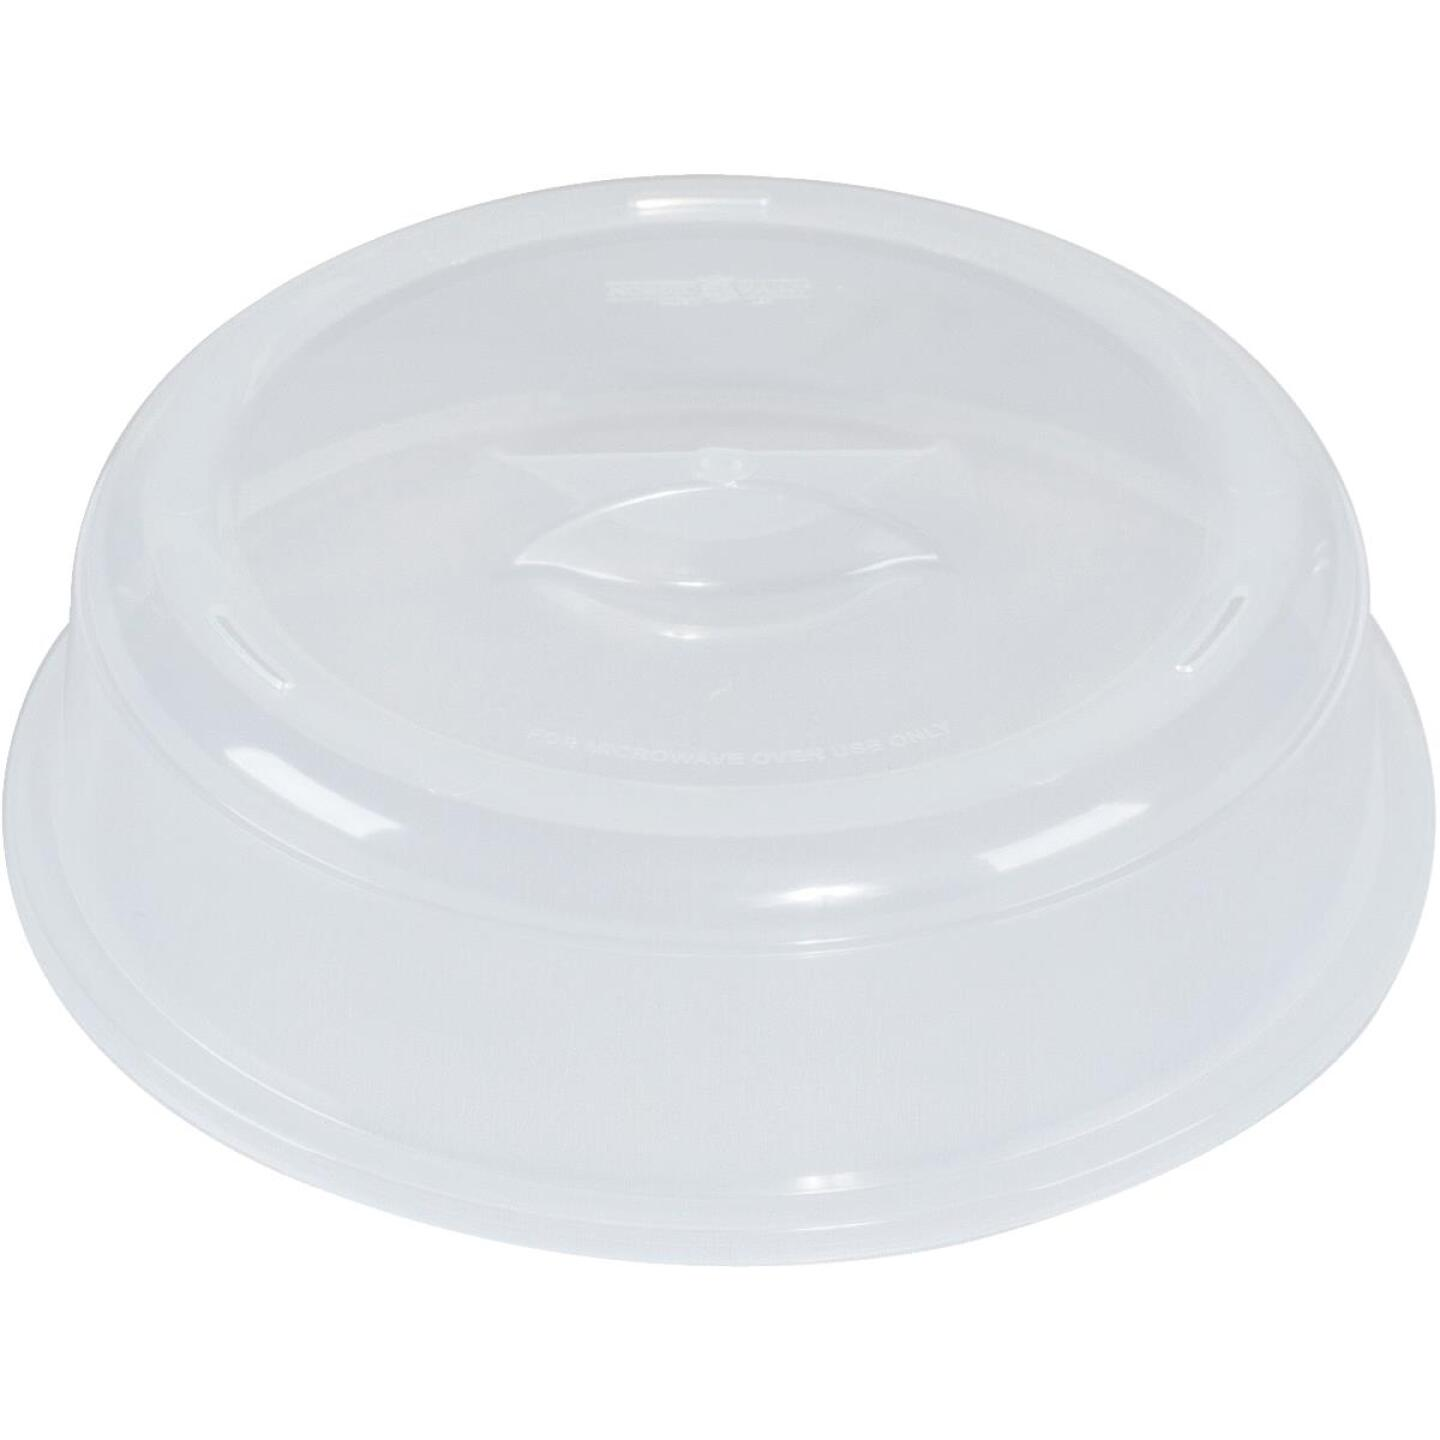 Nordic Ware 10.5 In. White Microwave Splatter Cover Image 1